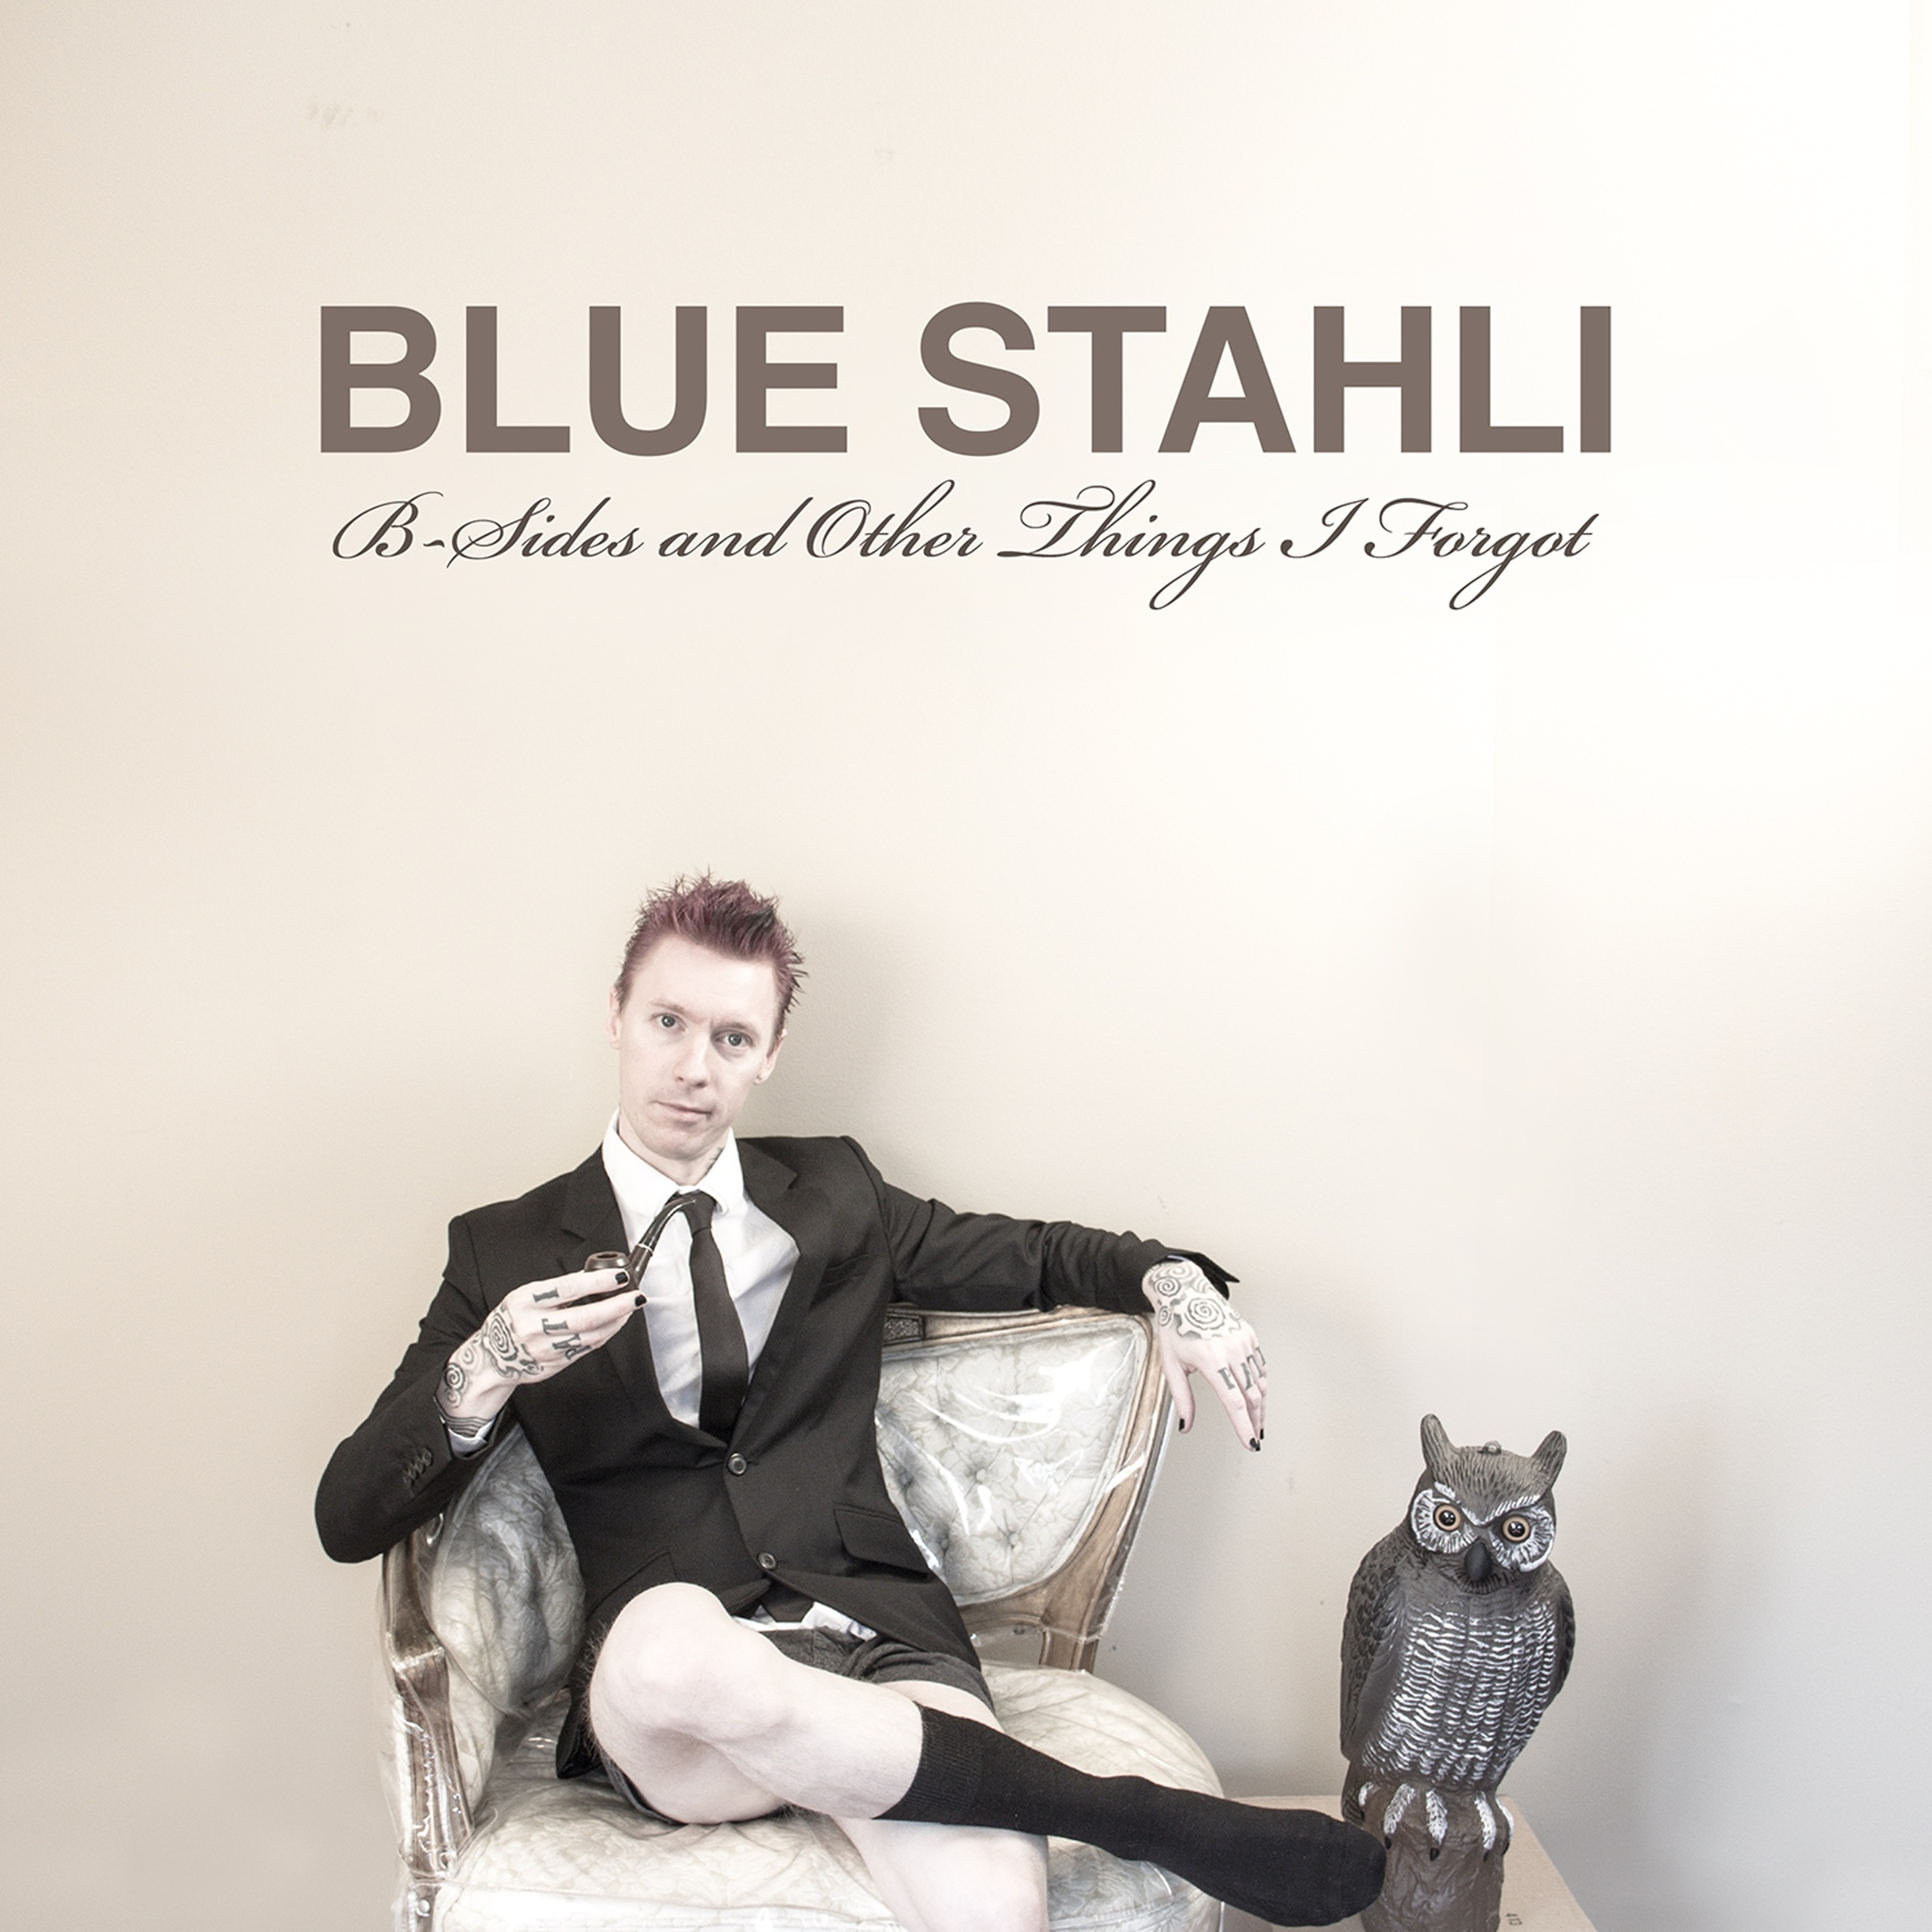 Blue Stahli album B-Sides and Other Things I Forgot